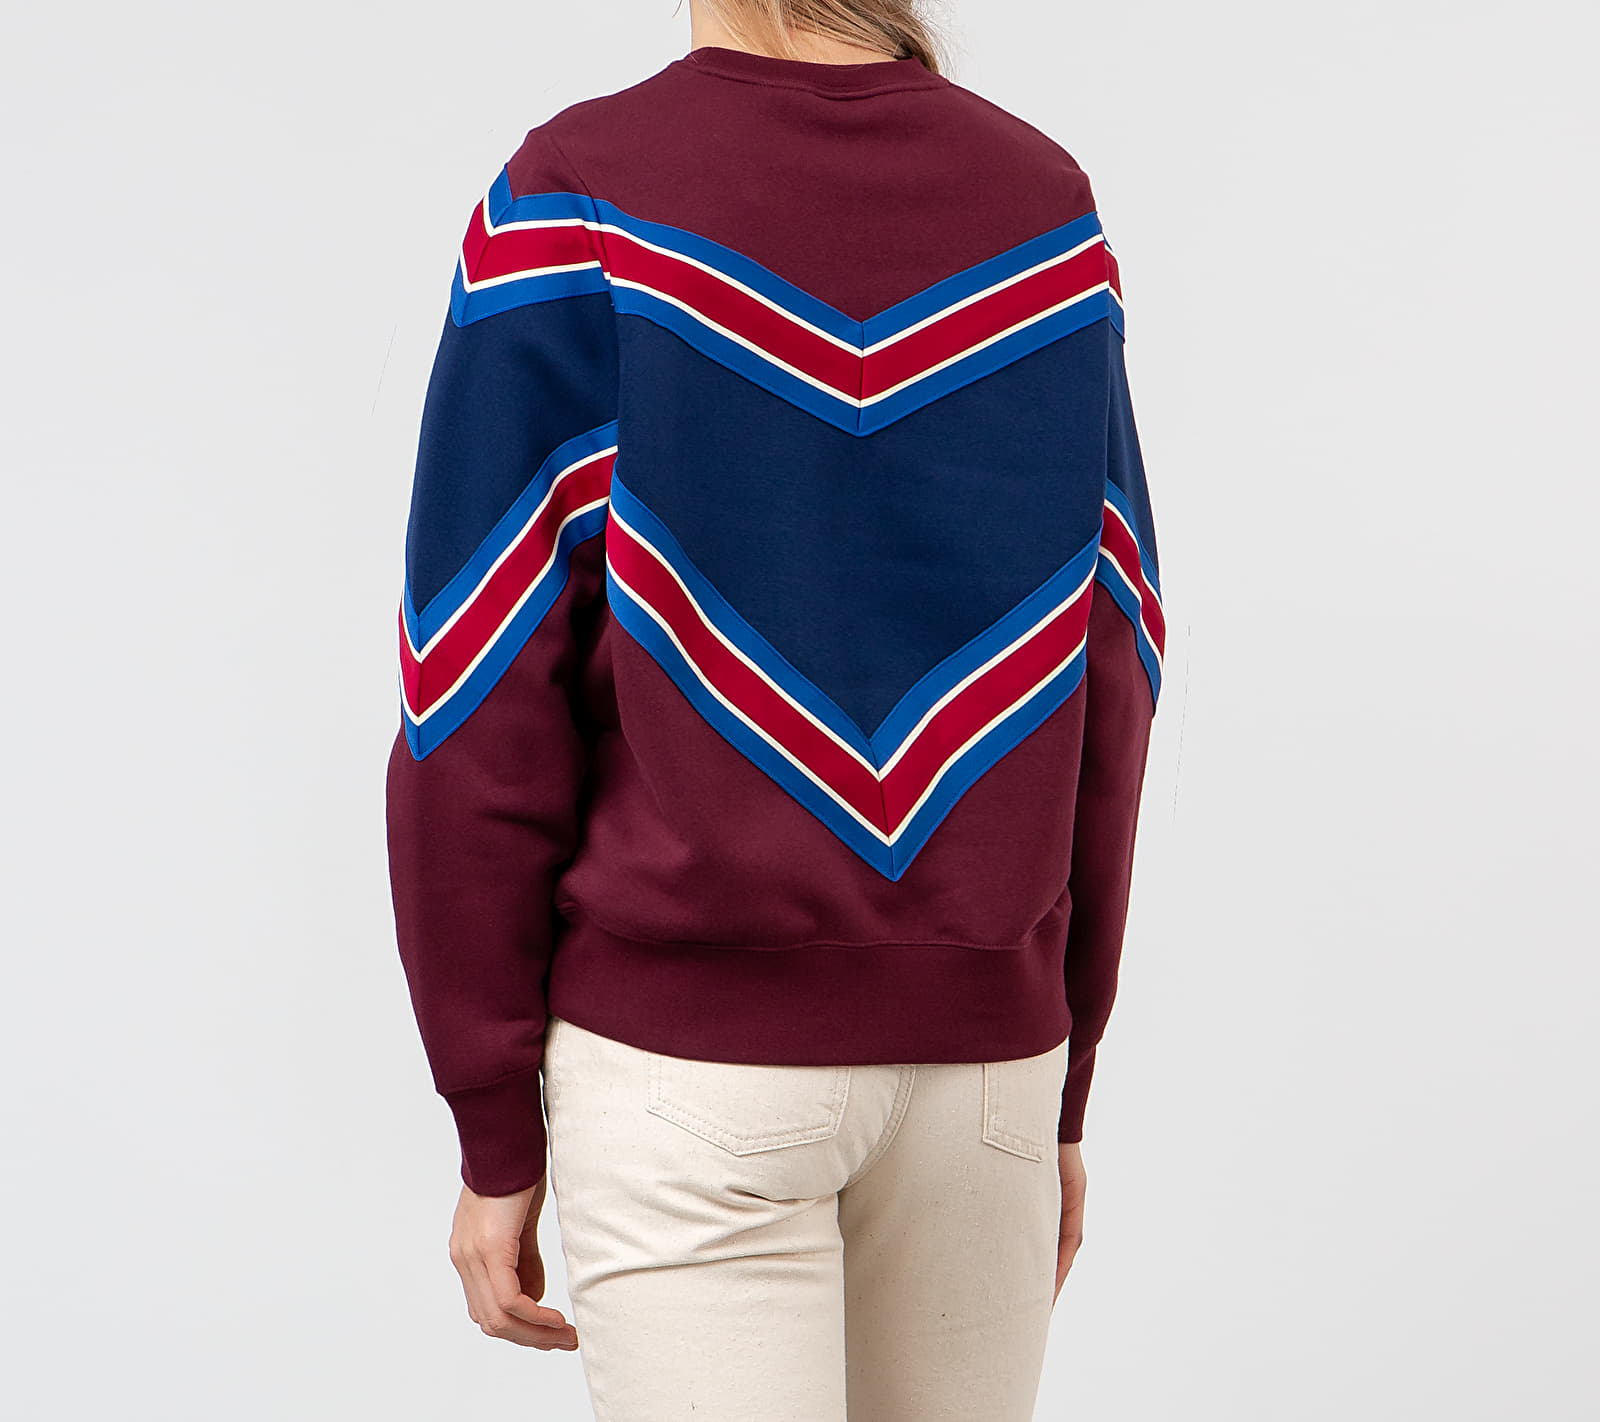 Nike Sportswear NSP Crewneck Night Maroon/ Blue Void/ White